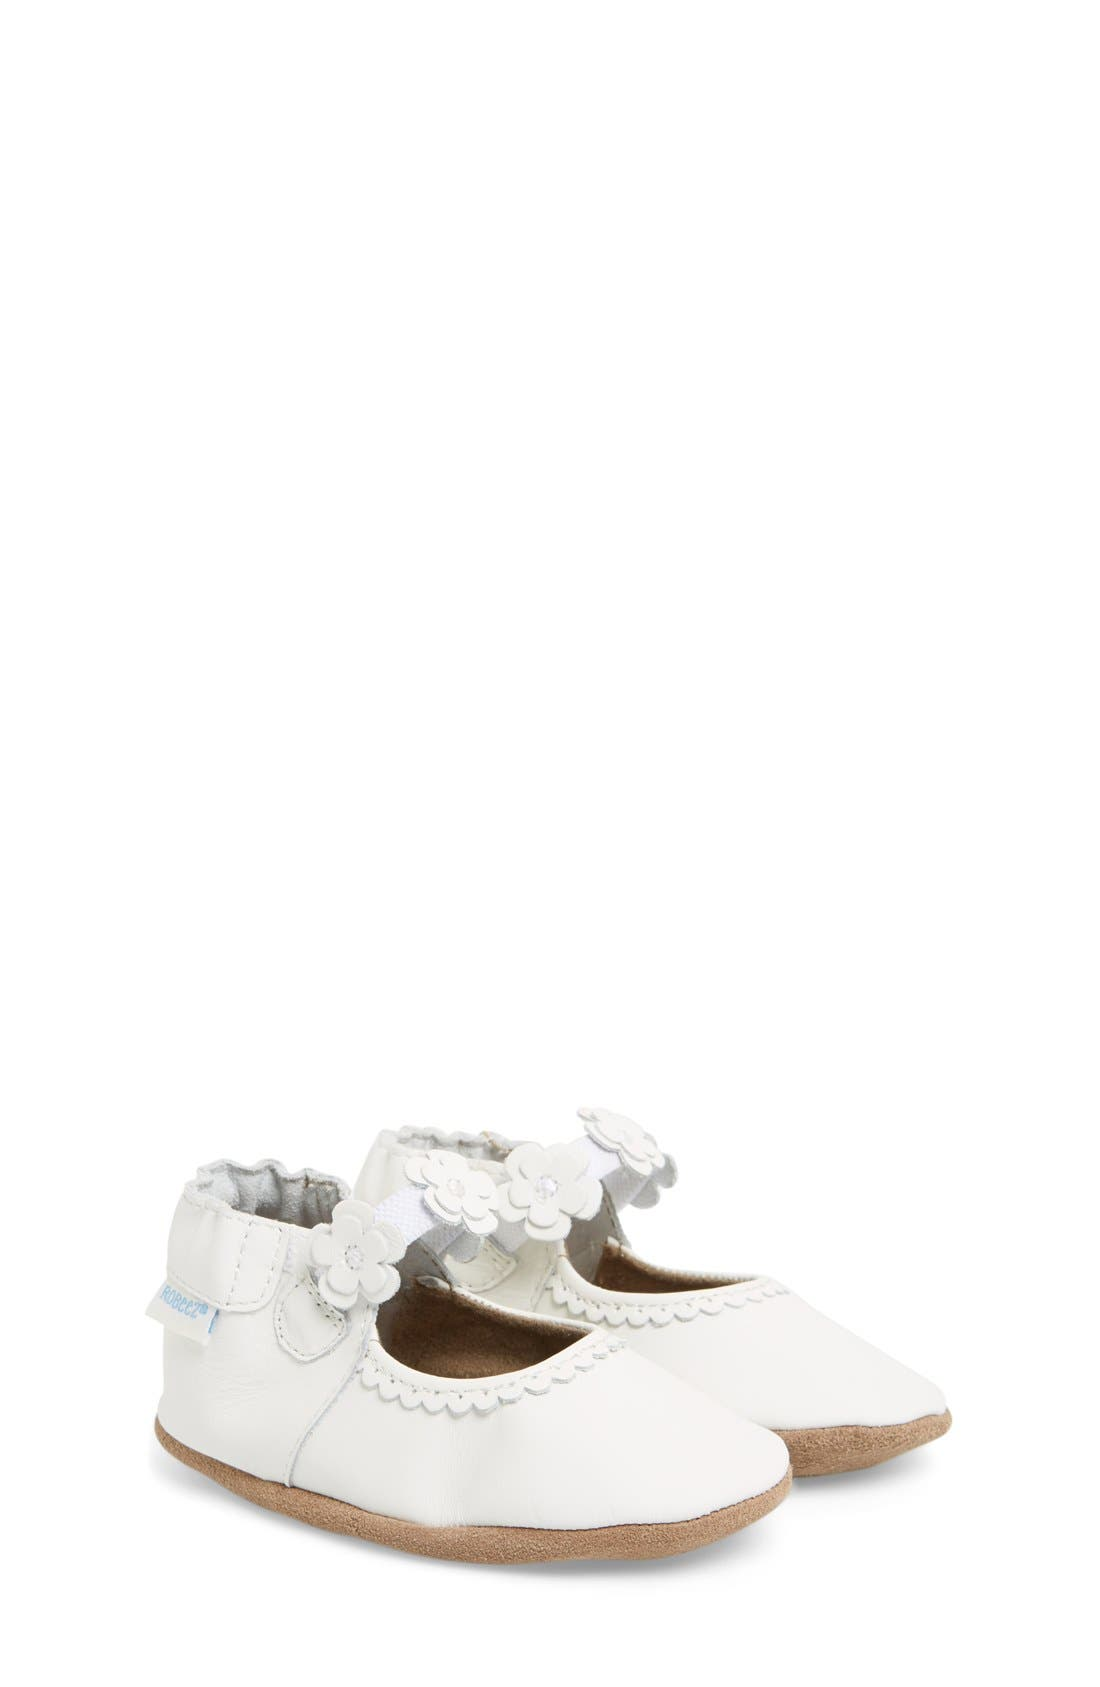 'Claire' Mary Jane Crib Shoe,                         Main,                         color, 100